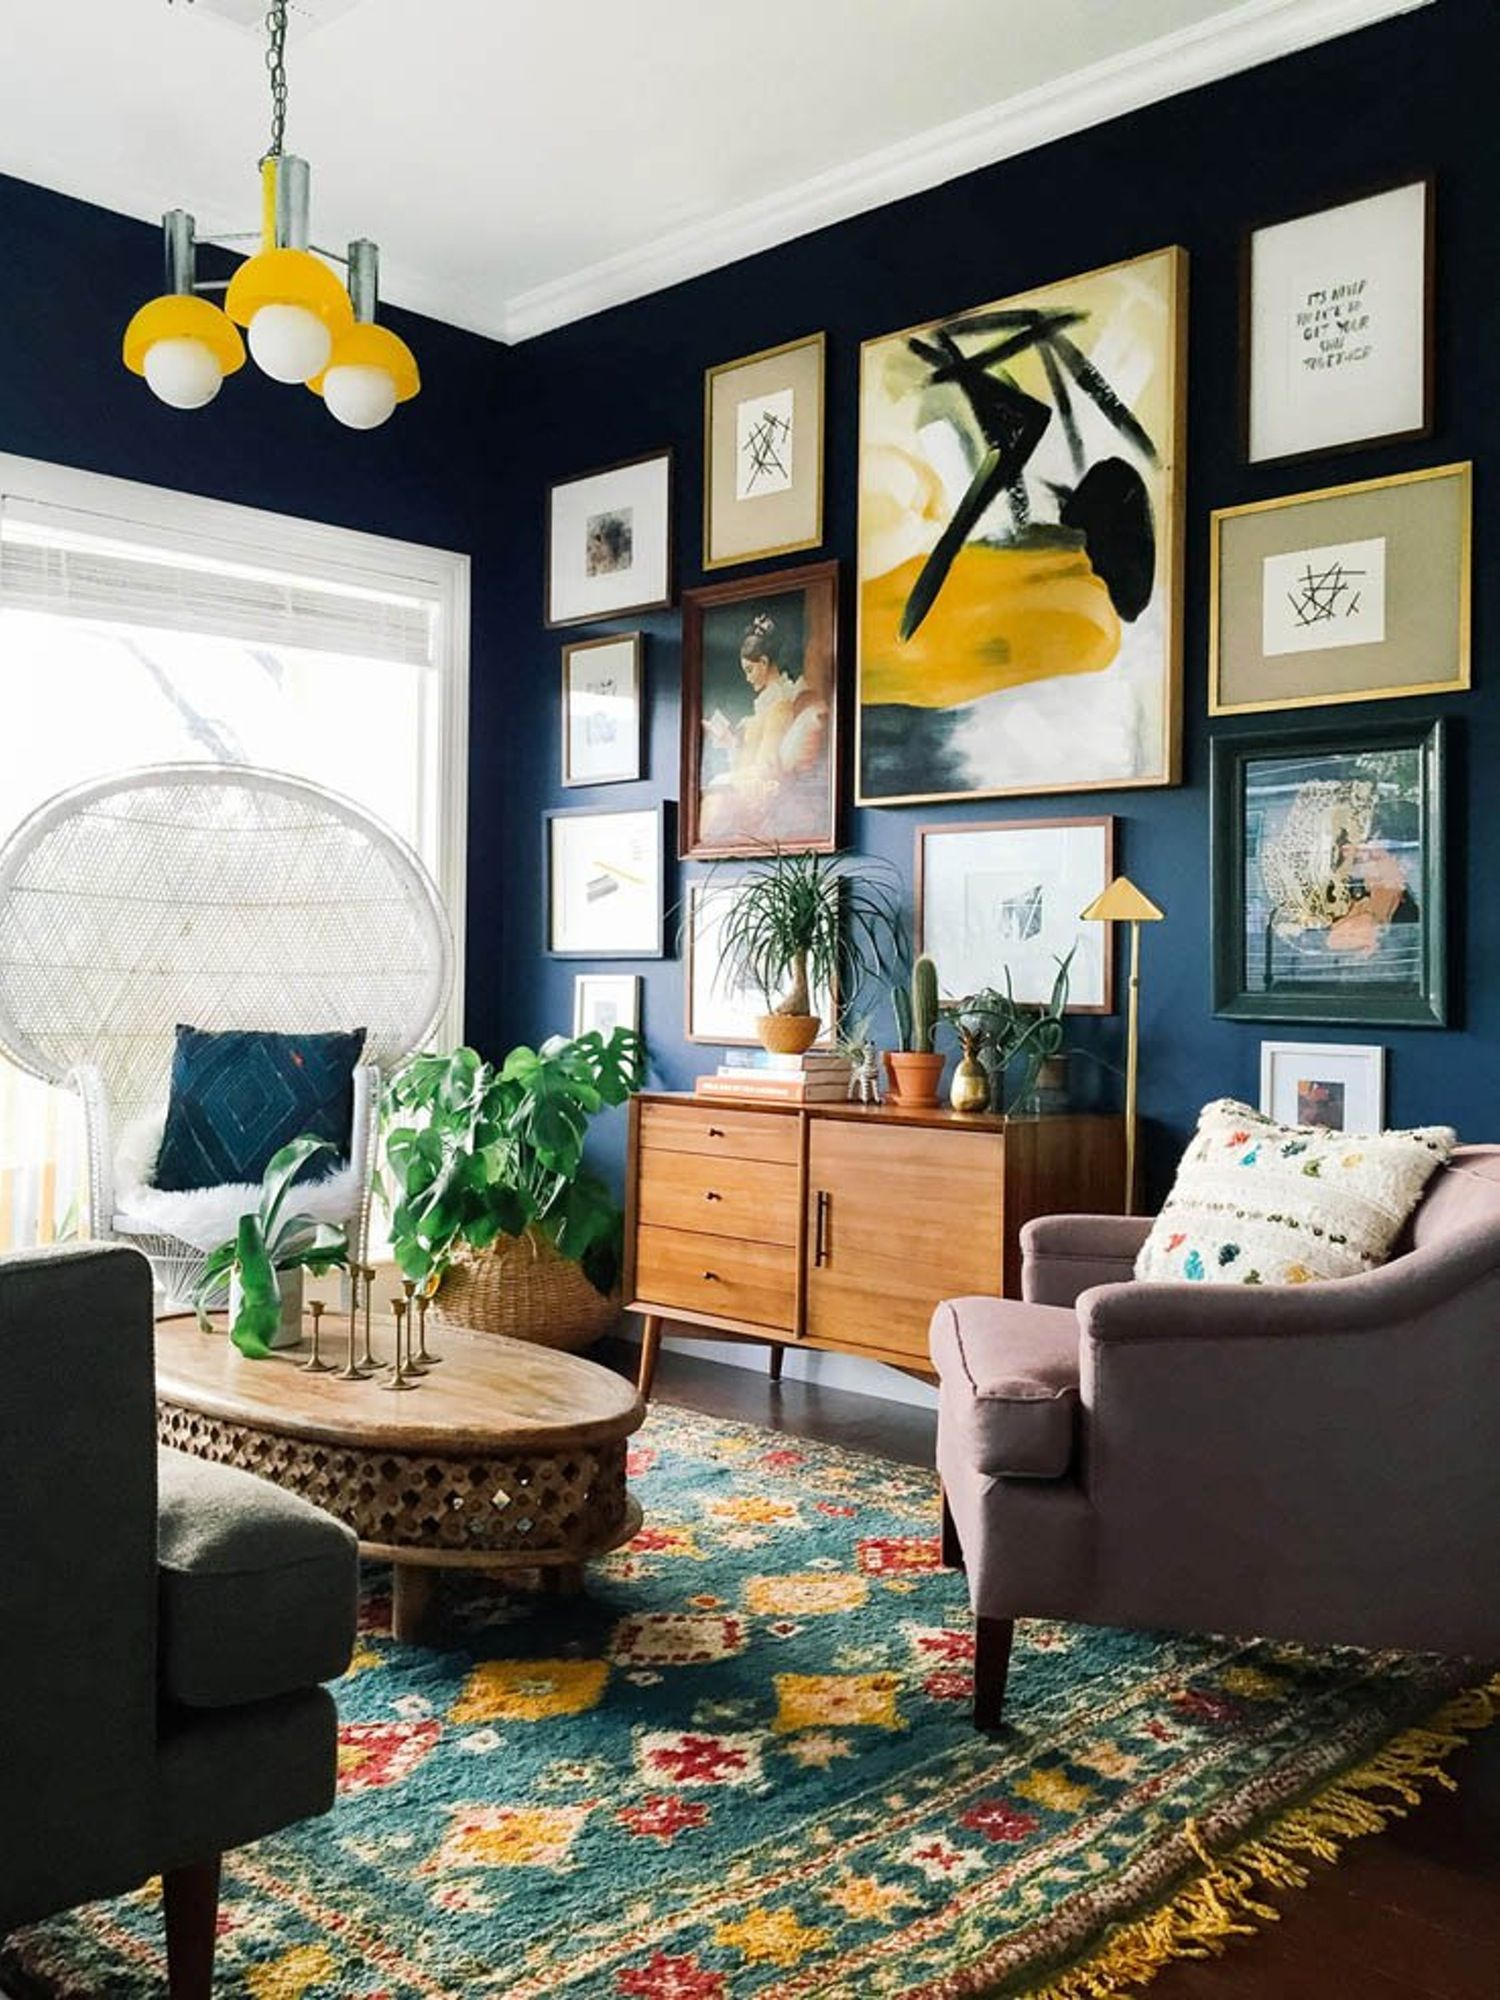 Make Way For Eclectic Home Décor  Living Room Vintage Shabby Gorgeous Interior Decorated Living Rooms Design Ideas